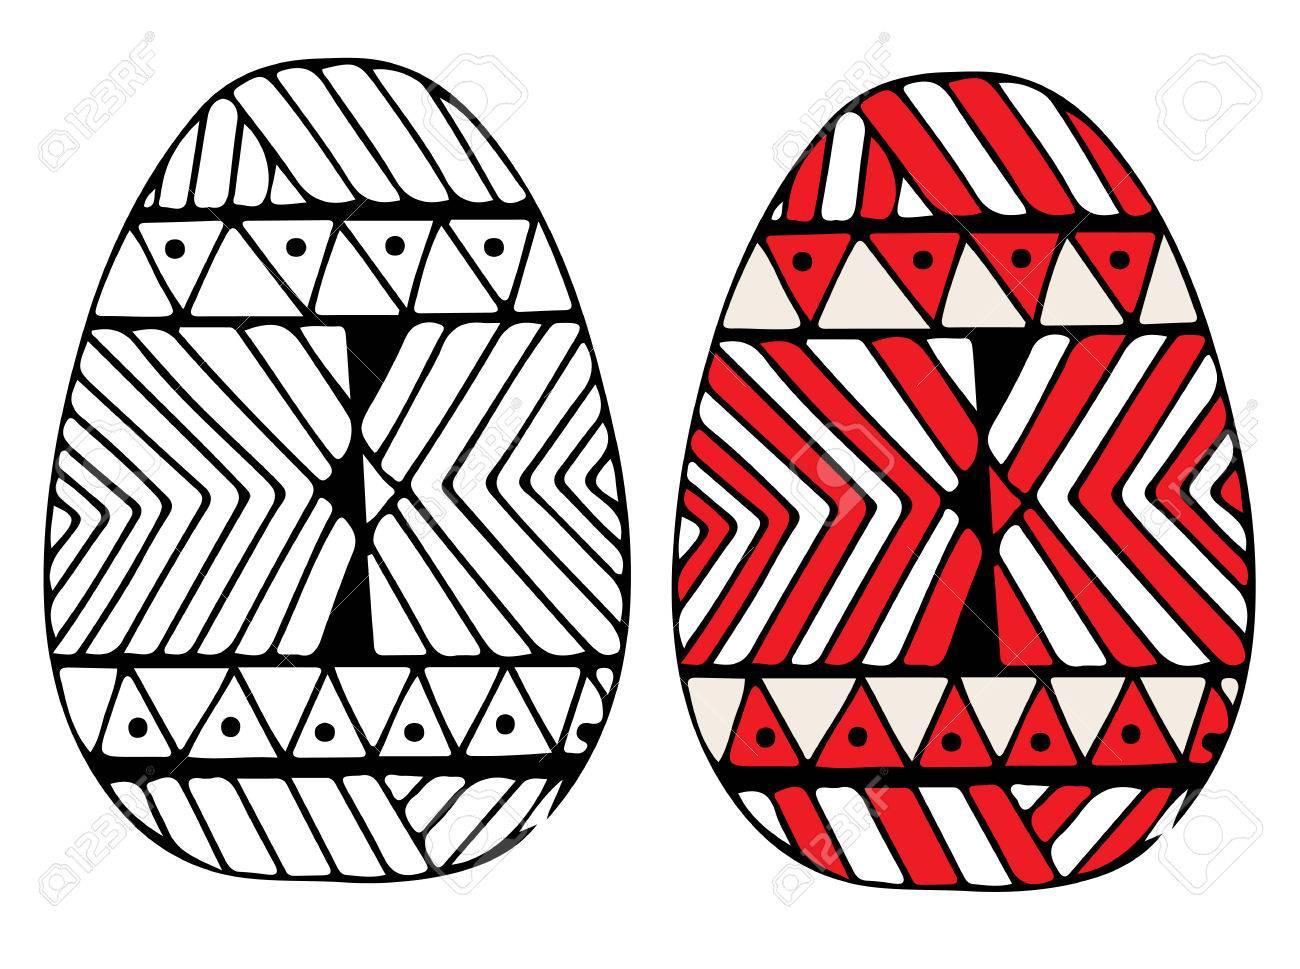 Hand Drawn Black And Red Easter Egg With Abstract Pattern For Coloring Book Design Elements